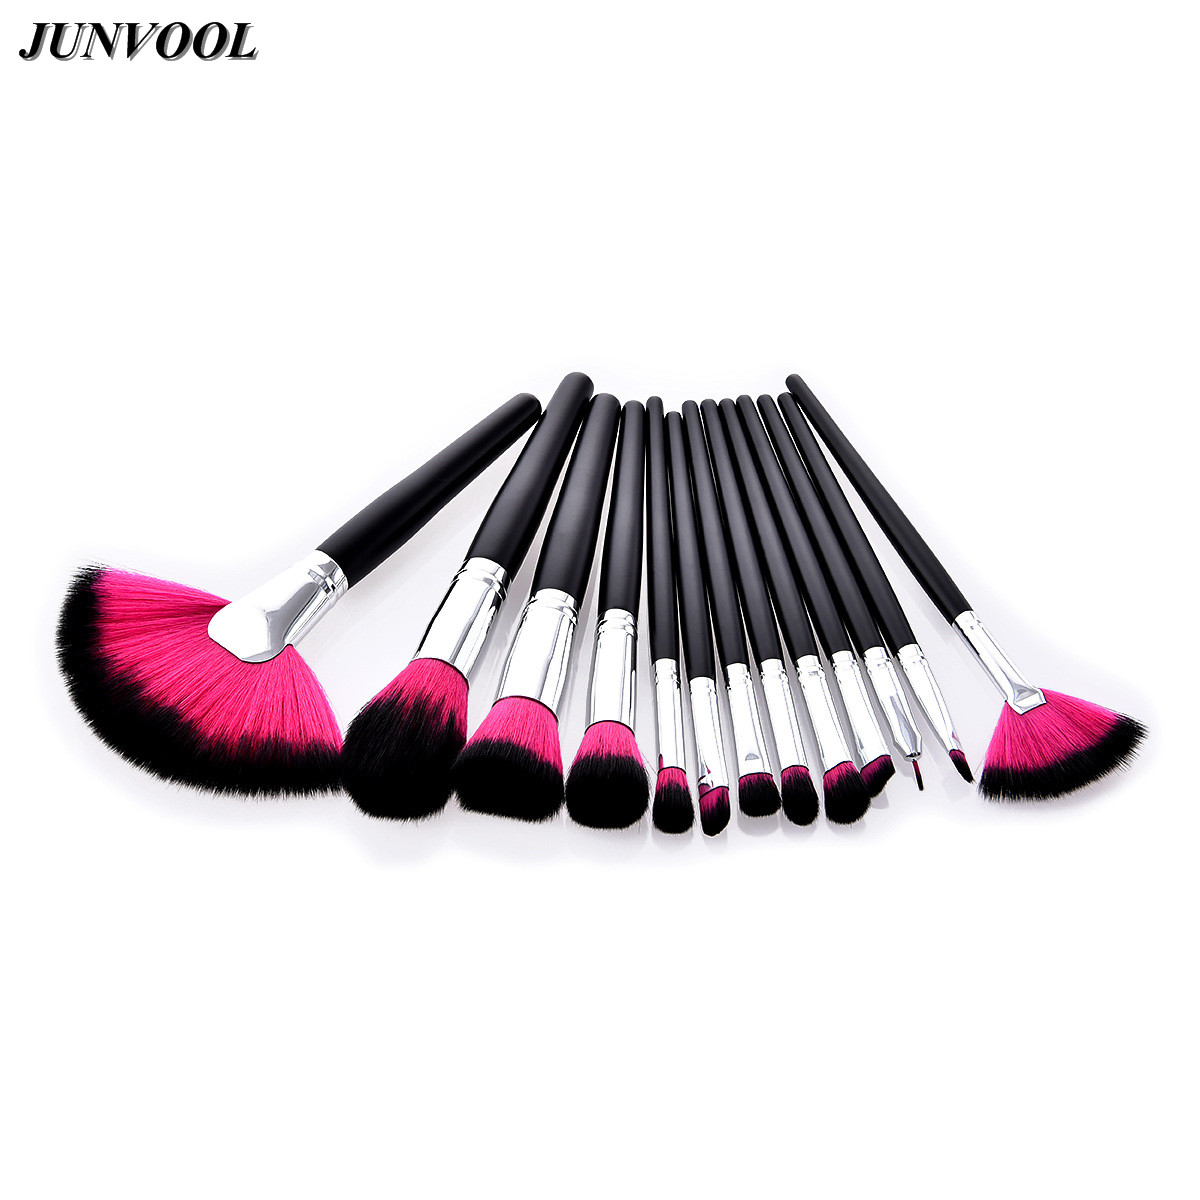 Cosmetic Fan Makeup Brush 13pcs Pro Eyebrow Foundation Powder Eyeshadow Eyeliner Lip Concealer Eyelash Blending Brushes Set Kit new 32 pcs makeup brush set powder foundation eyeshadow eyeliner lip cosmetic brushes kit beauty tools fm88